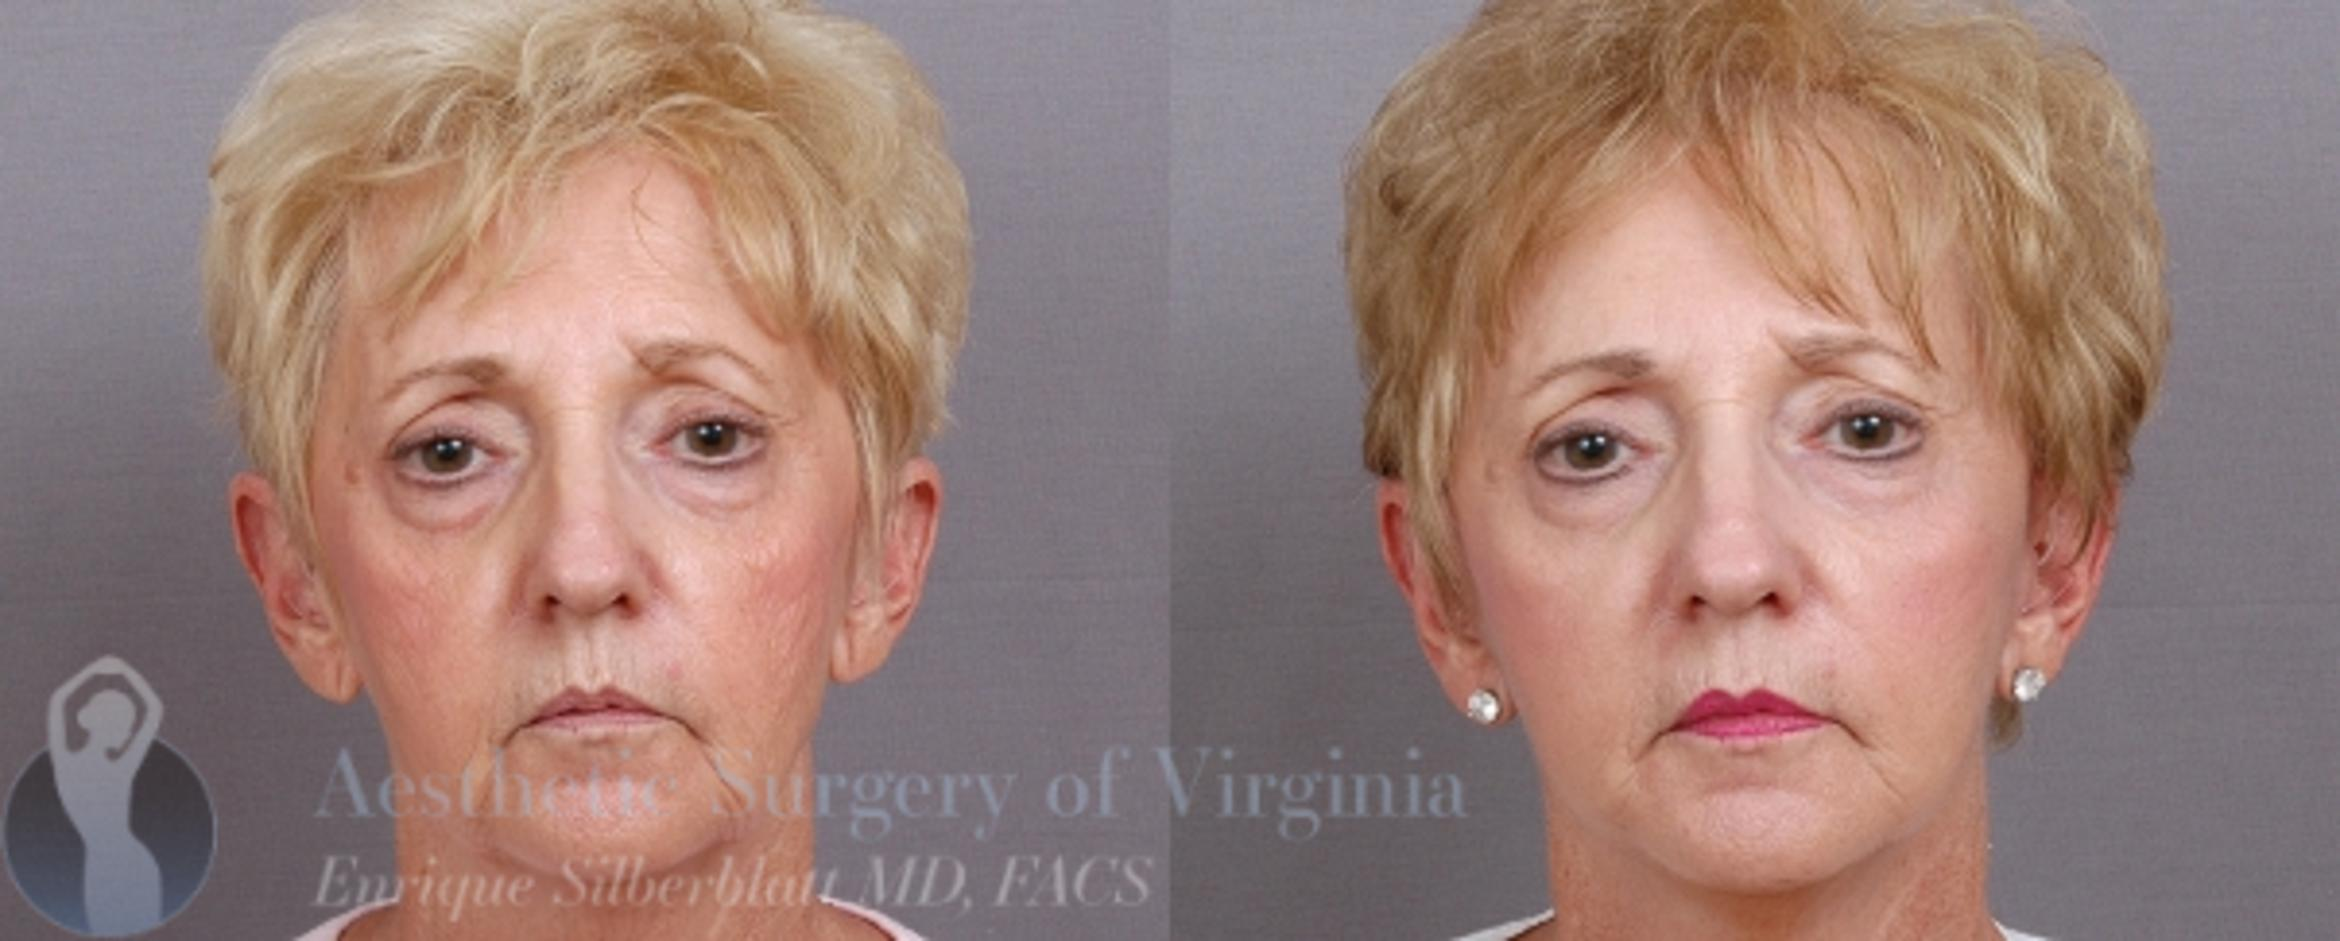 Mini Facelift Case 40 Before & After View #1 | Roanoke, VA | Aesthetic Surgery of Virginia: Enrique Silberblatt, MD